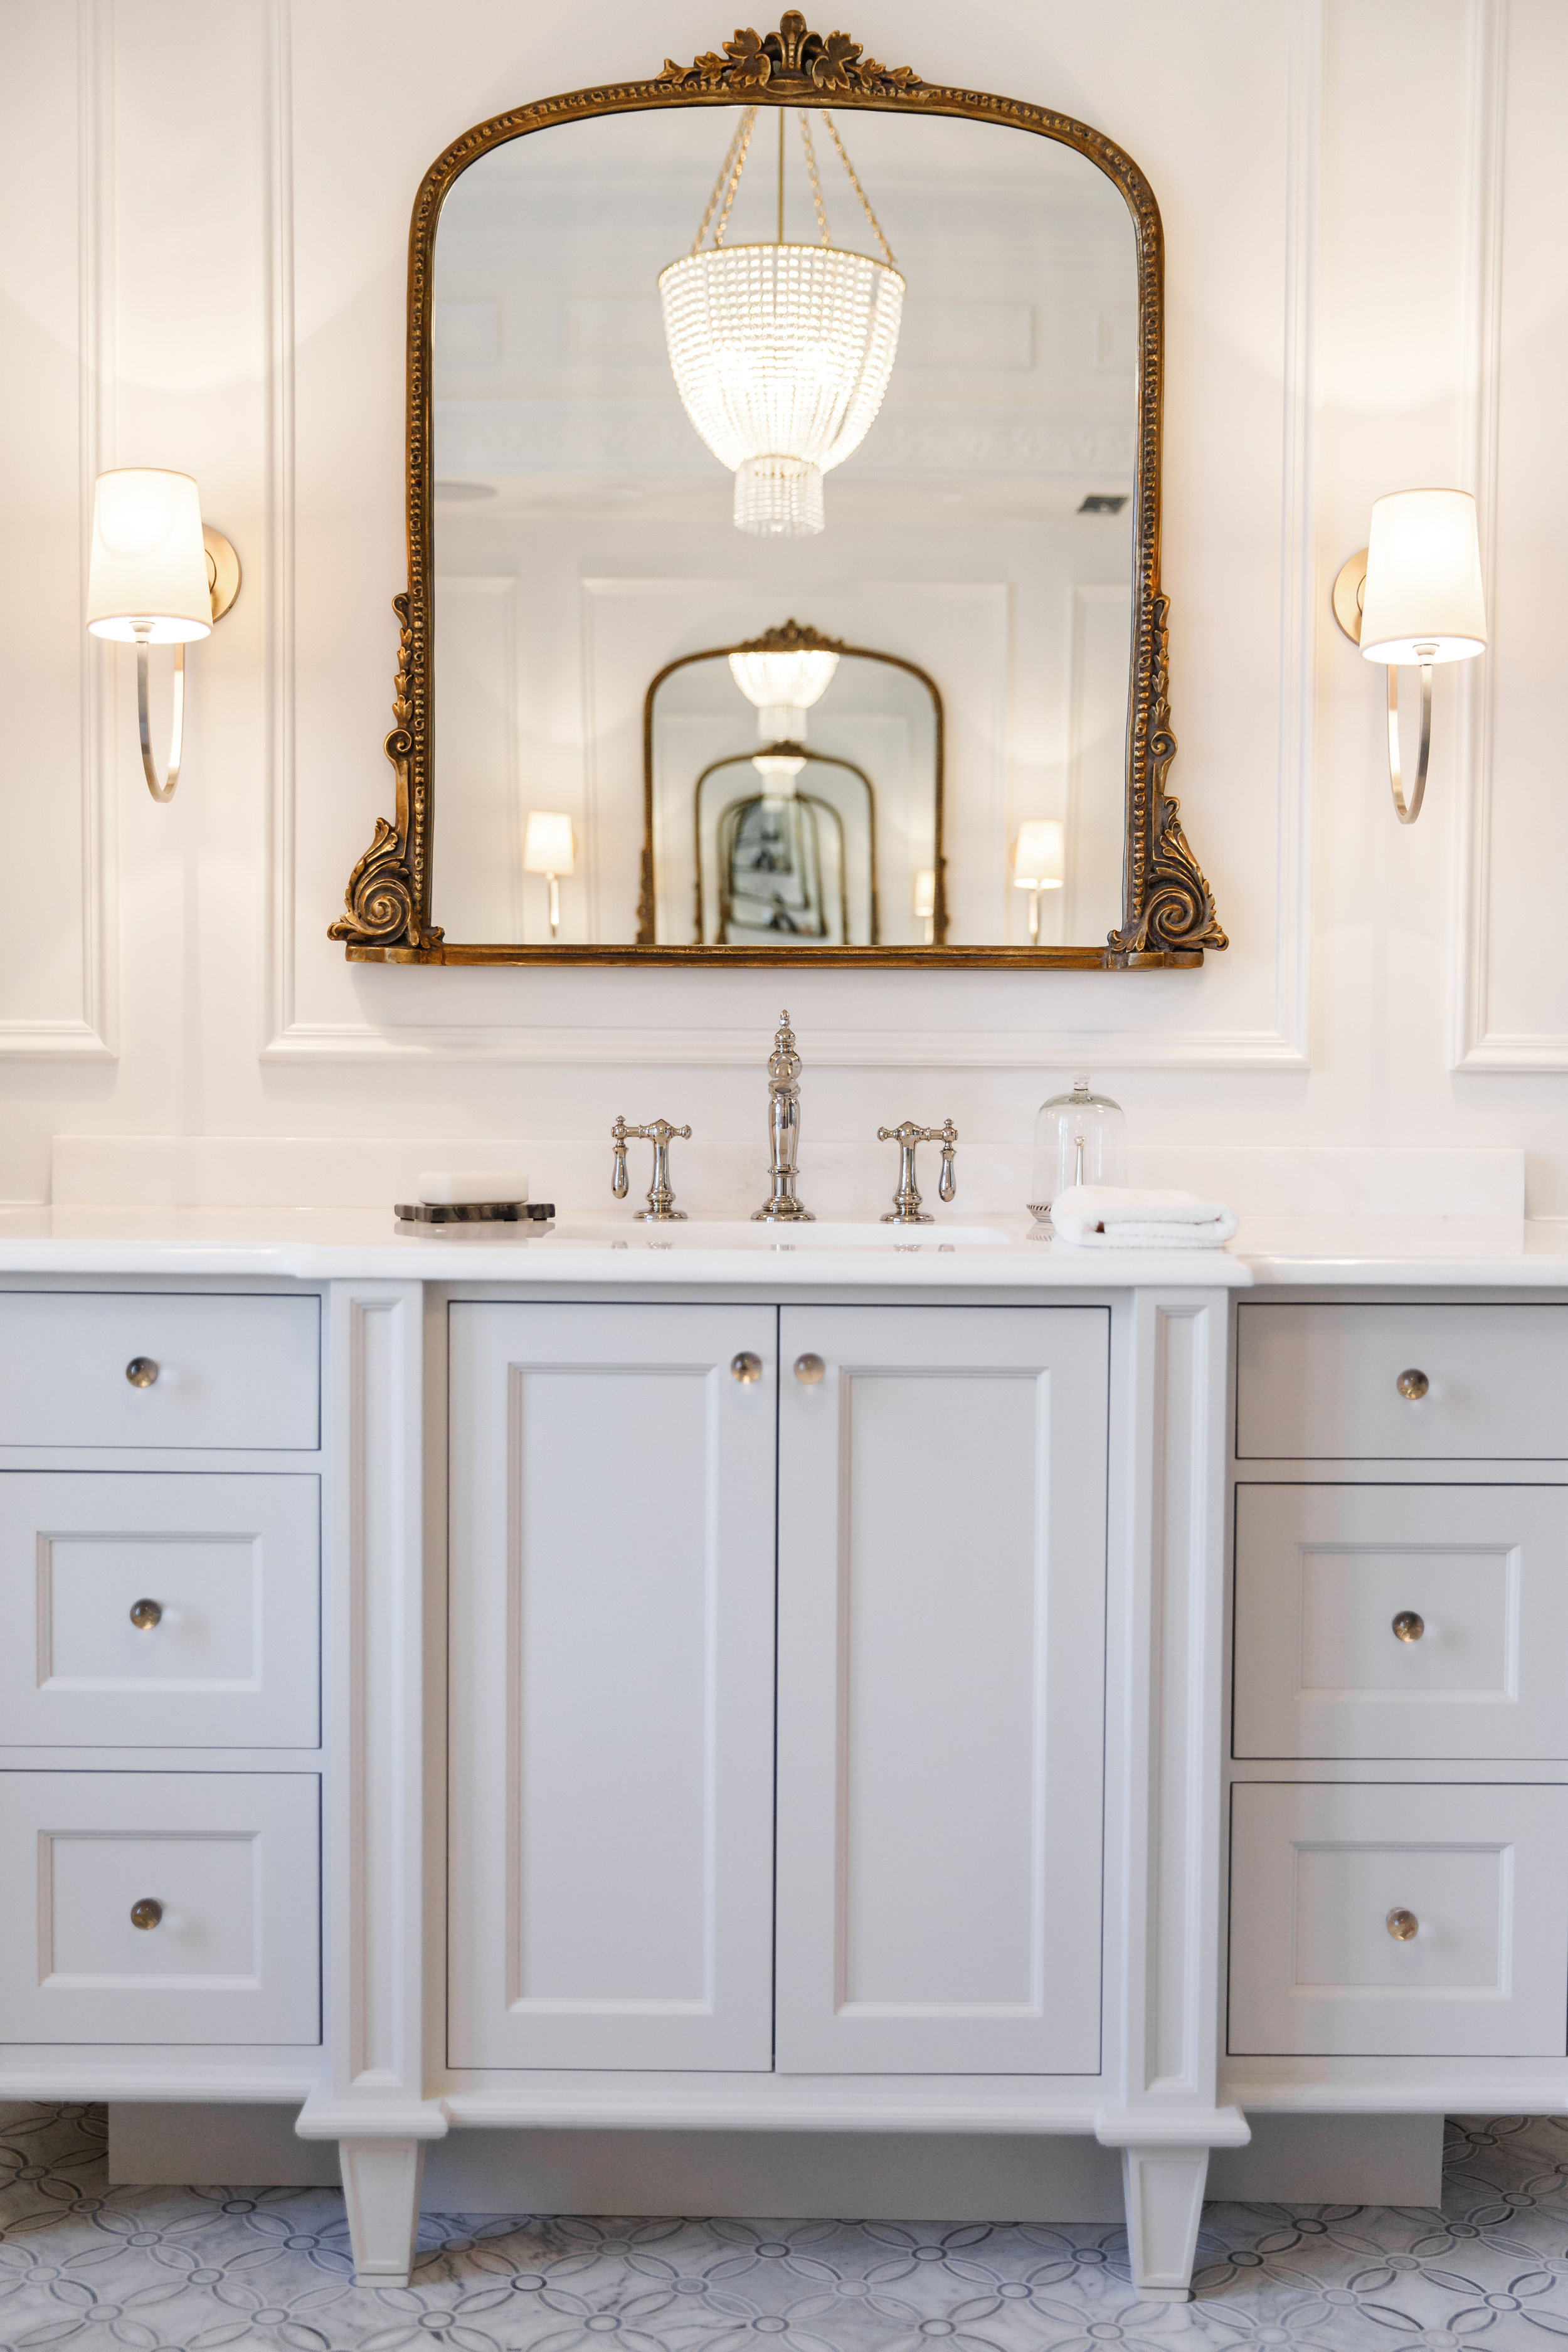 Chrome and brass hardware in master bathroom